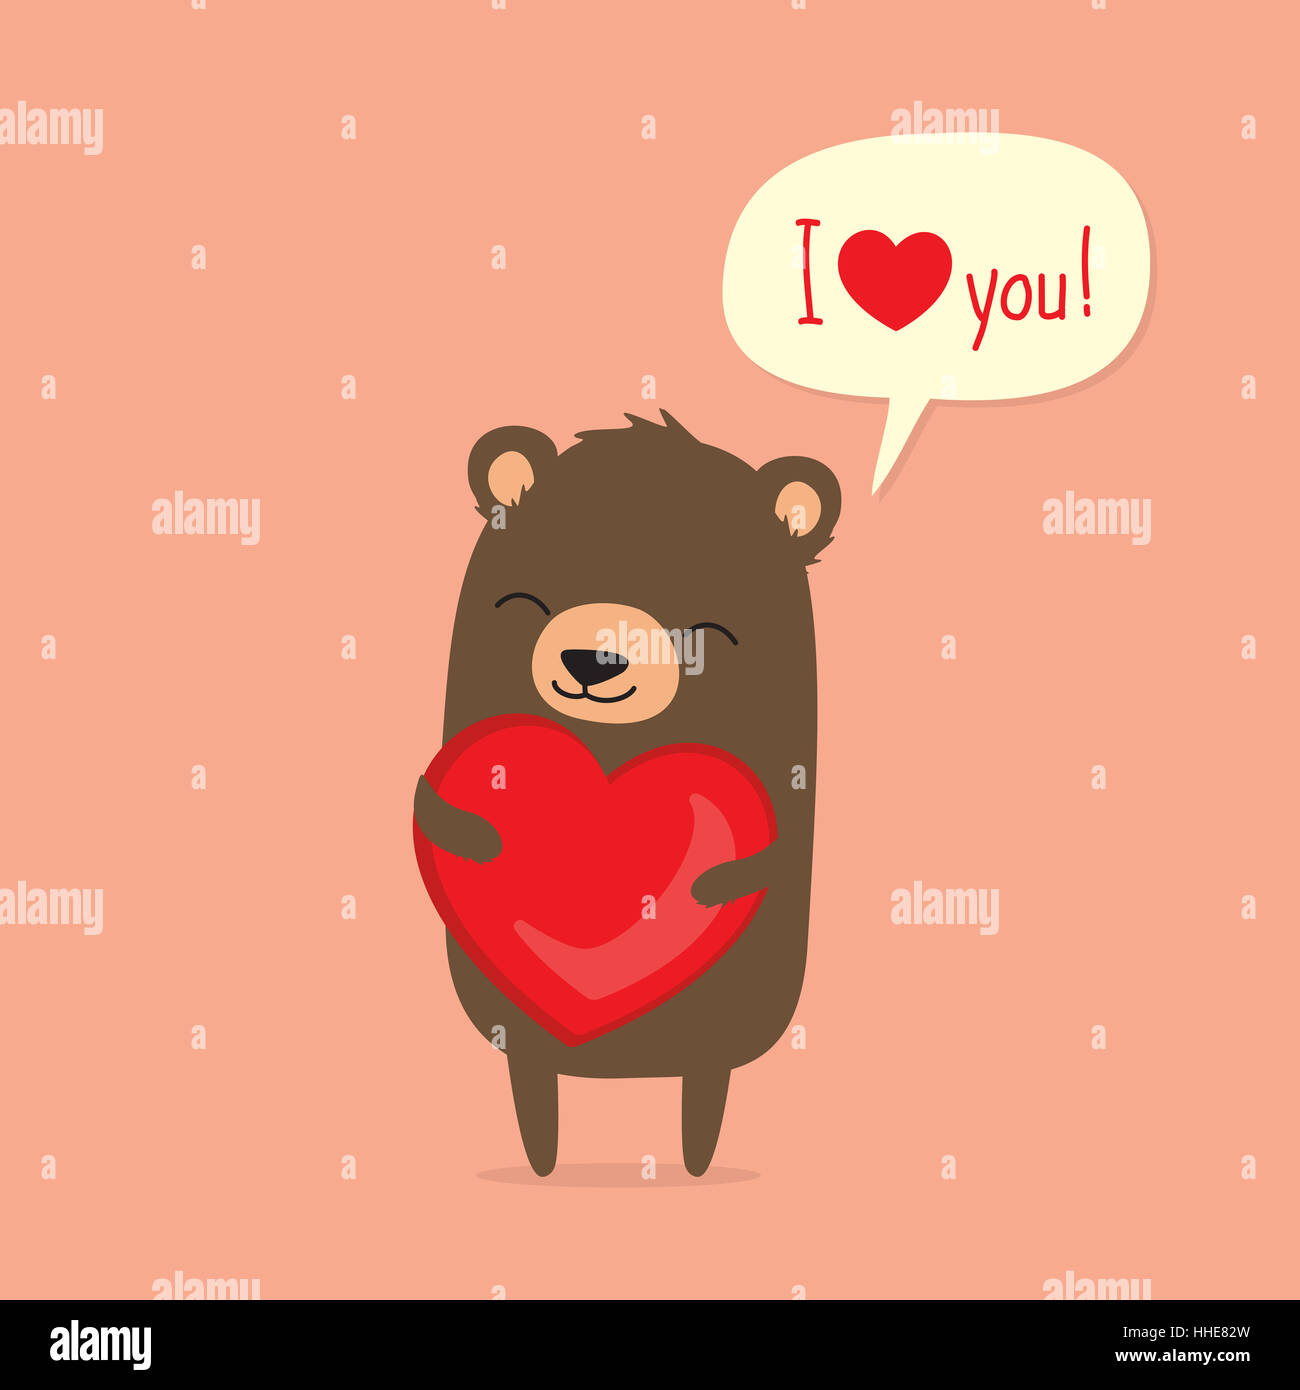 Valentine S Day Card With Cute Cartoon Bear Holding Heart And Saying